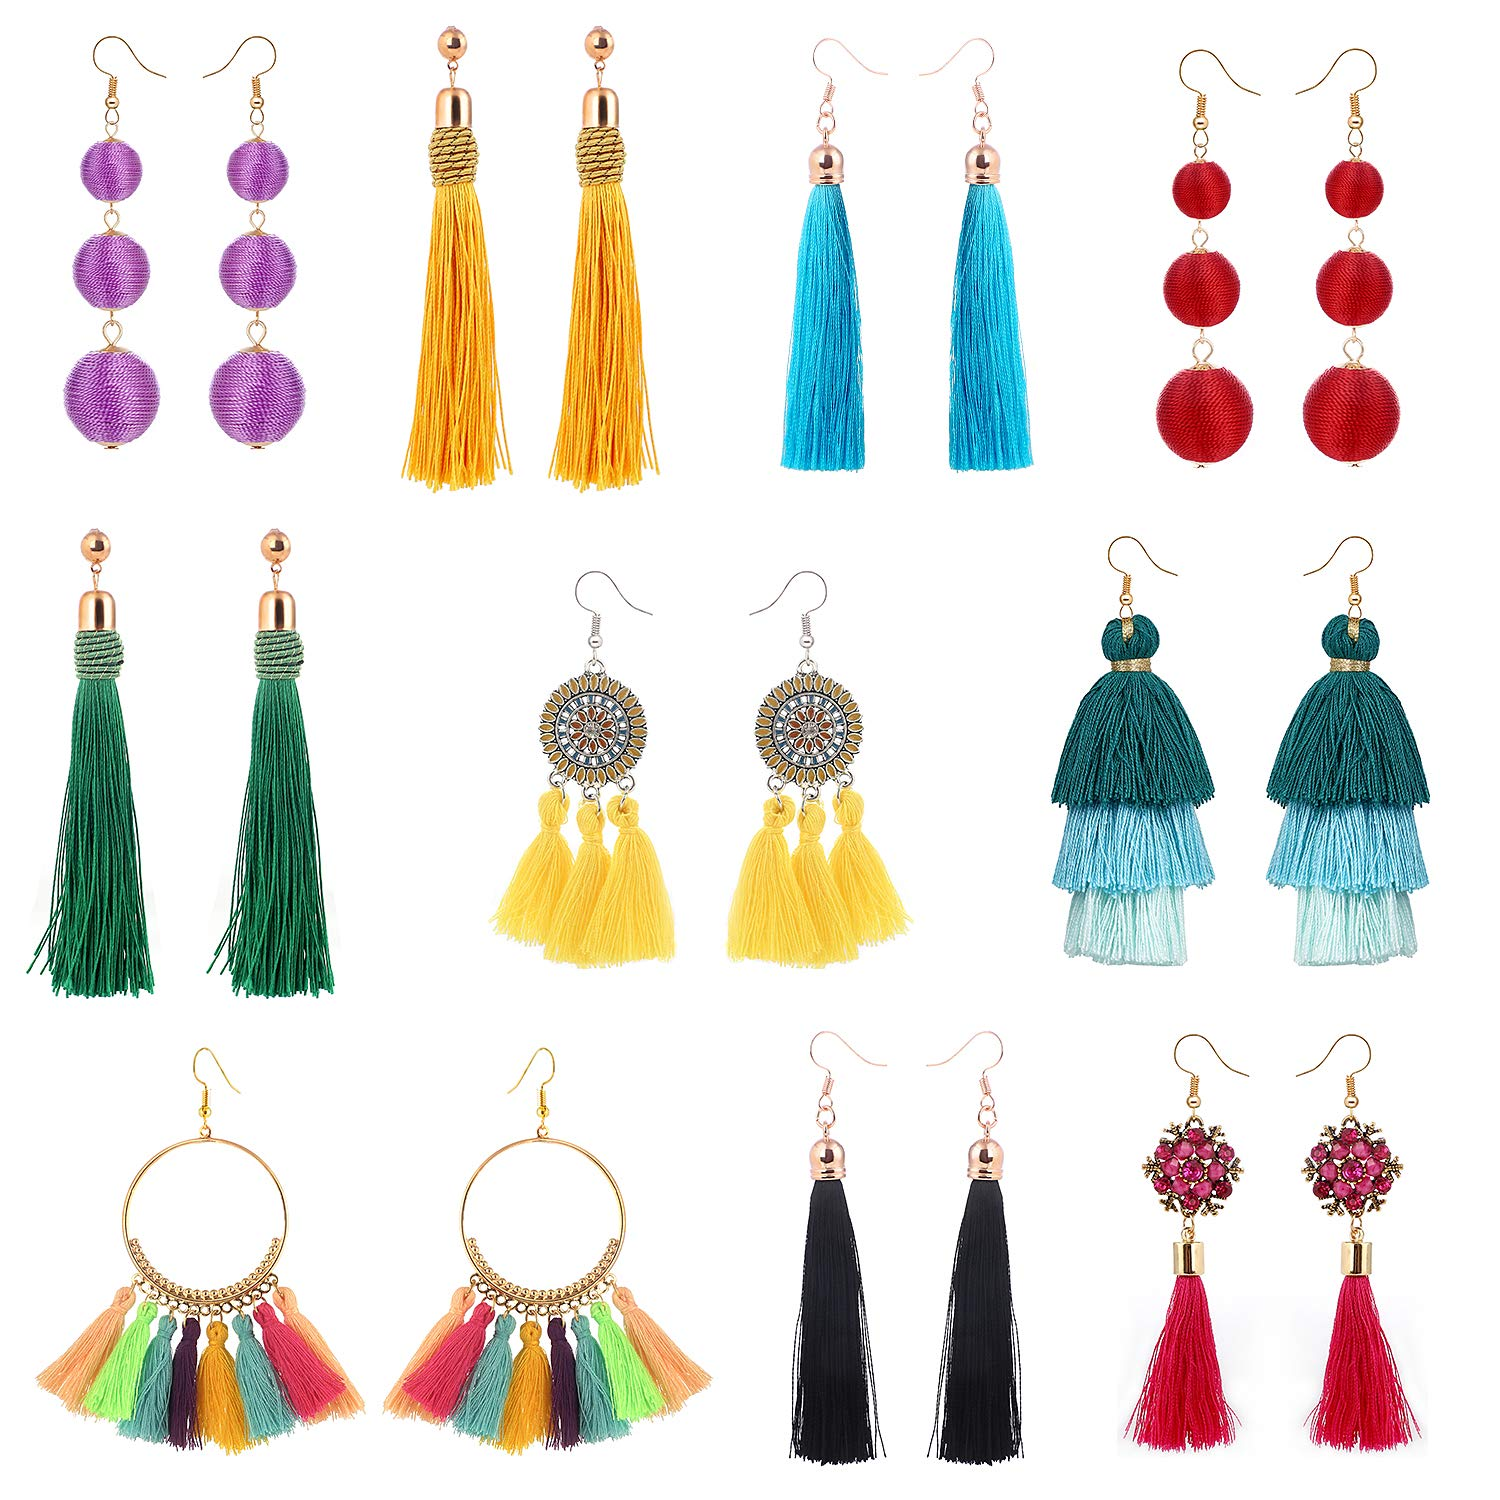 10 Pairs Colorful Long Layered Thread Ball Dangle Earrings Yellow Red Turquoise Tassel Hoop Fringe Bohemian Tiered Tassel Drop Earrings Soriee Stud Earrings Gift Set for Girls Women luoyue